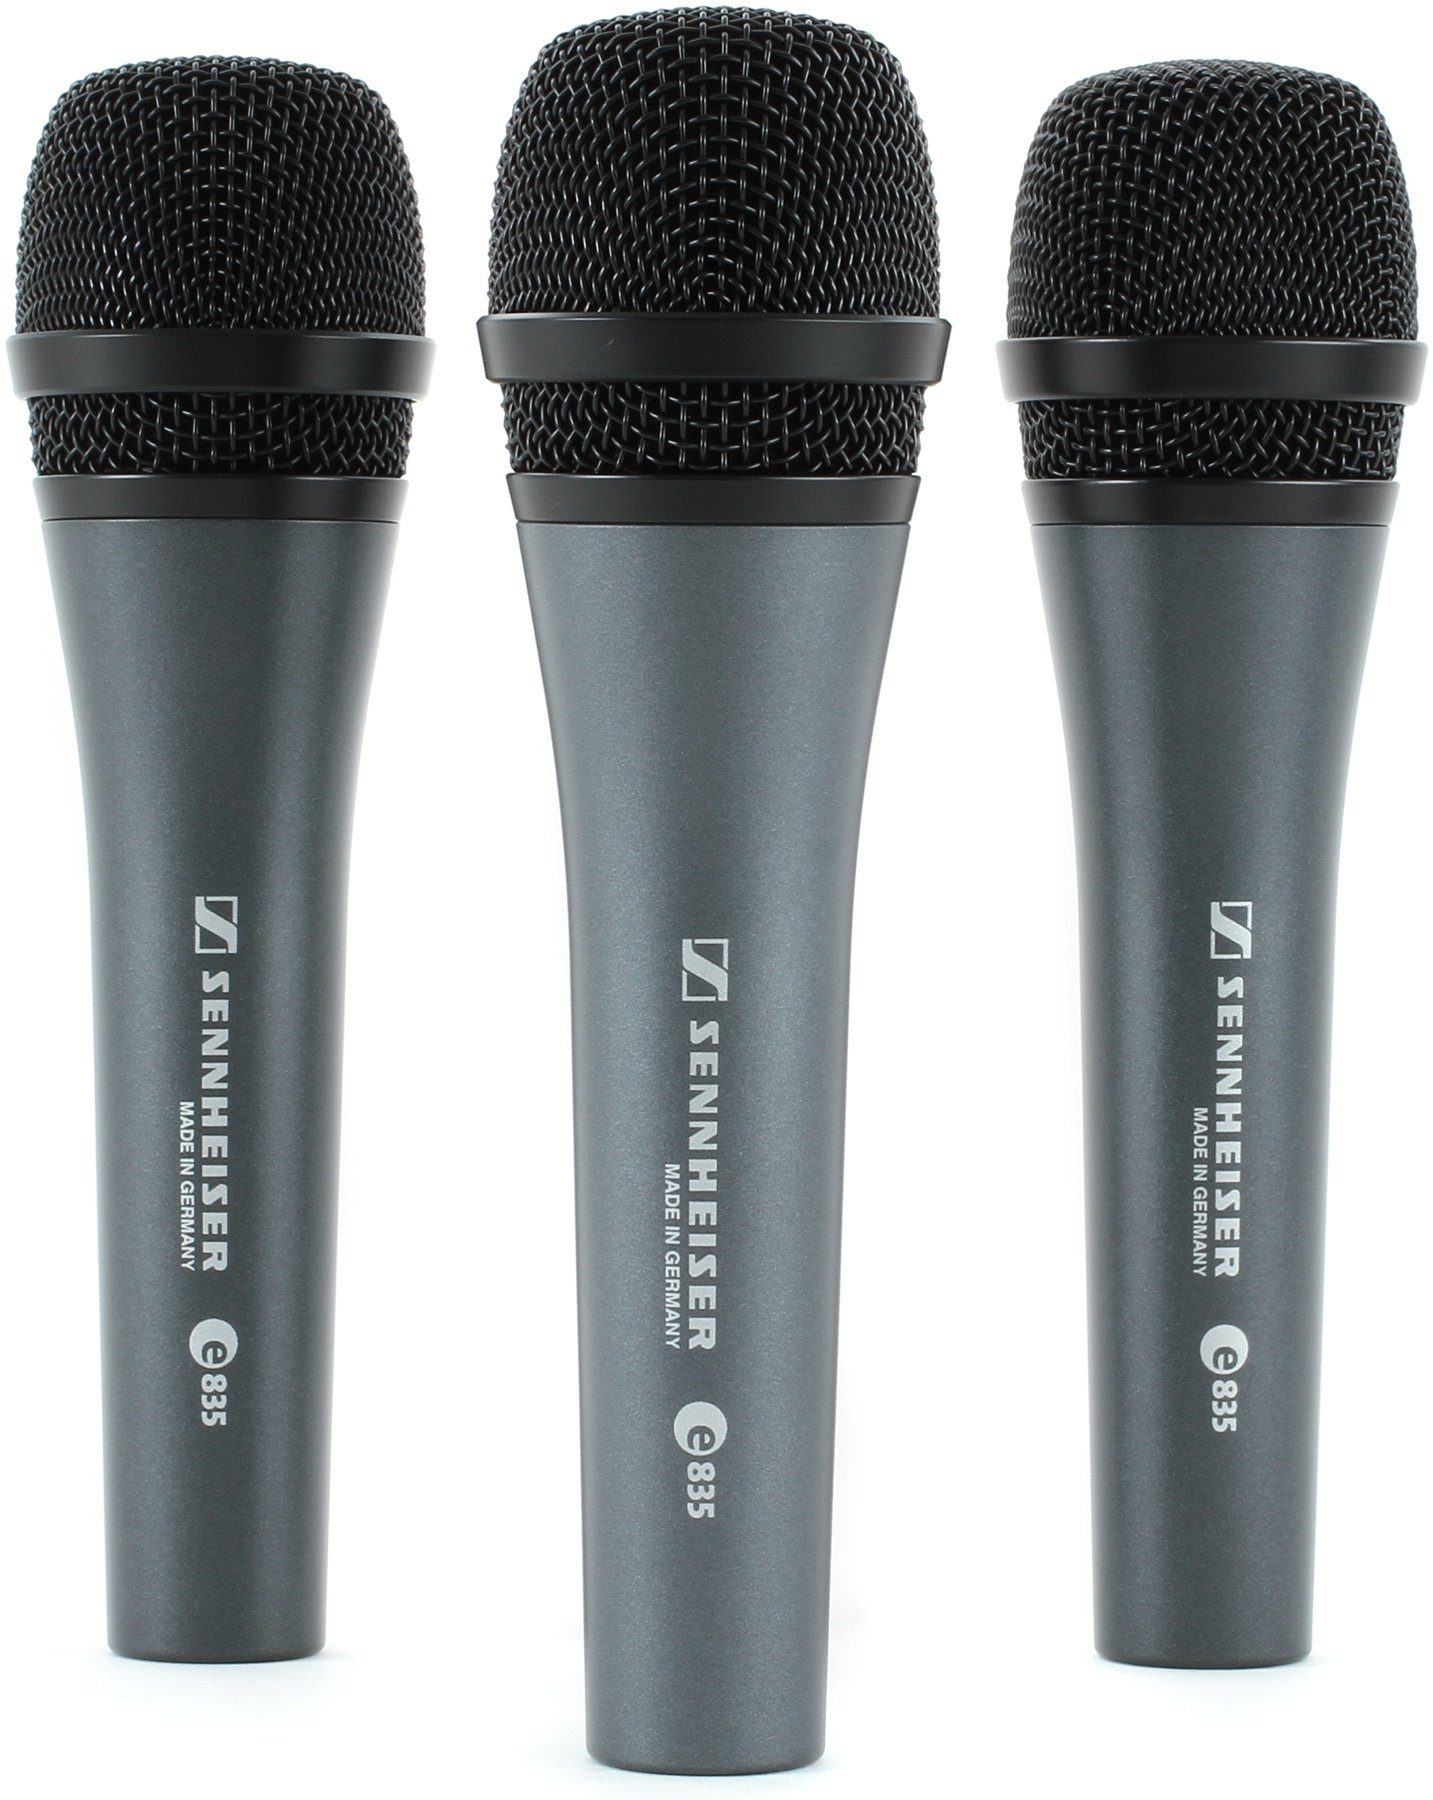 Sennheiser E835 Live Vocal Microphone 3 Pack Sweetwater E935 Image 1